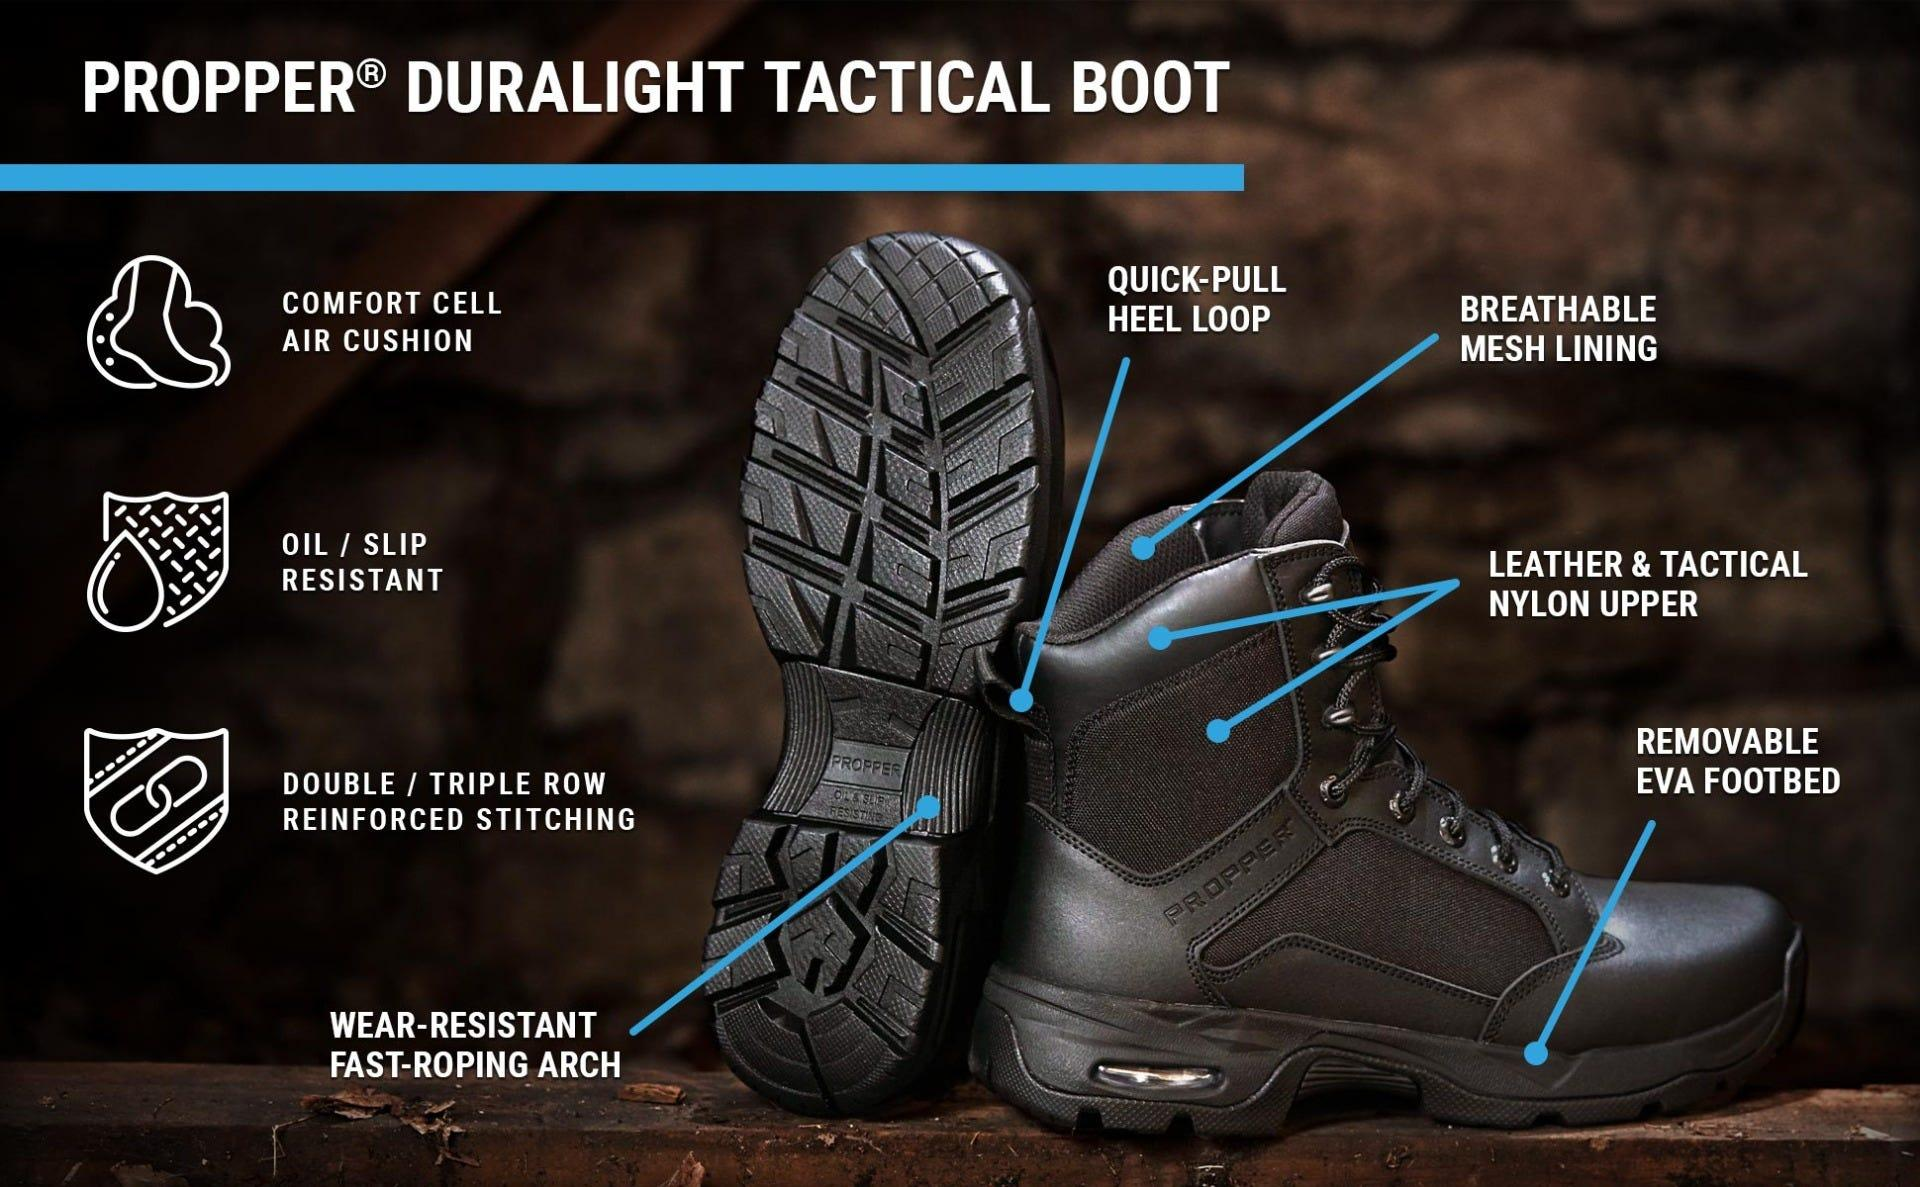 Black Duralight tactical boot has breathable mesh lining, leather upper, removable insert and oil and slip resistance with air cushions.